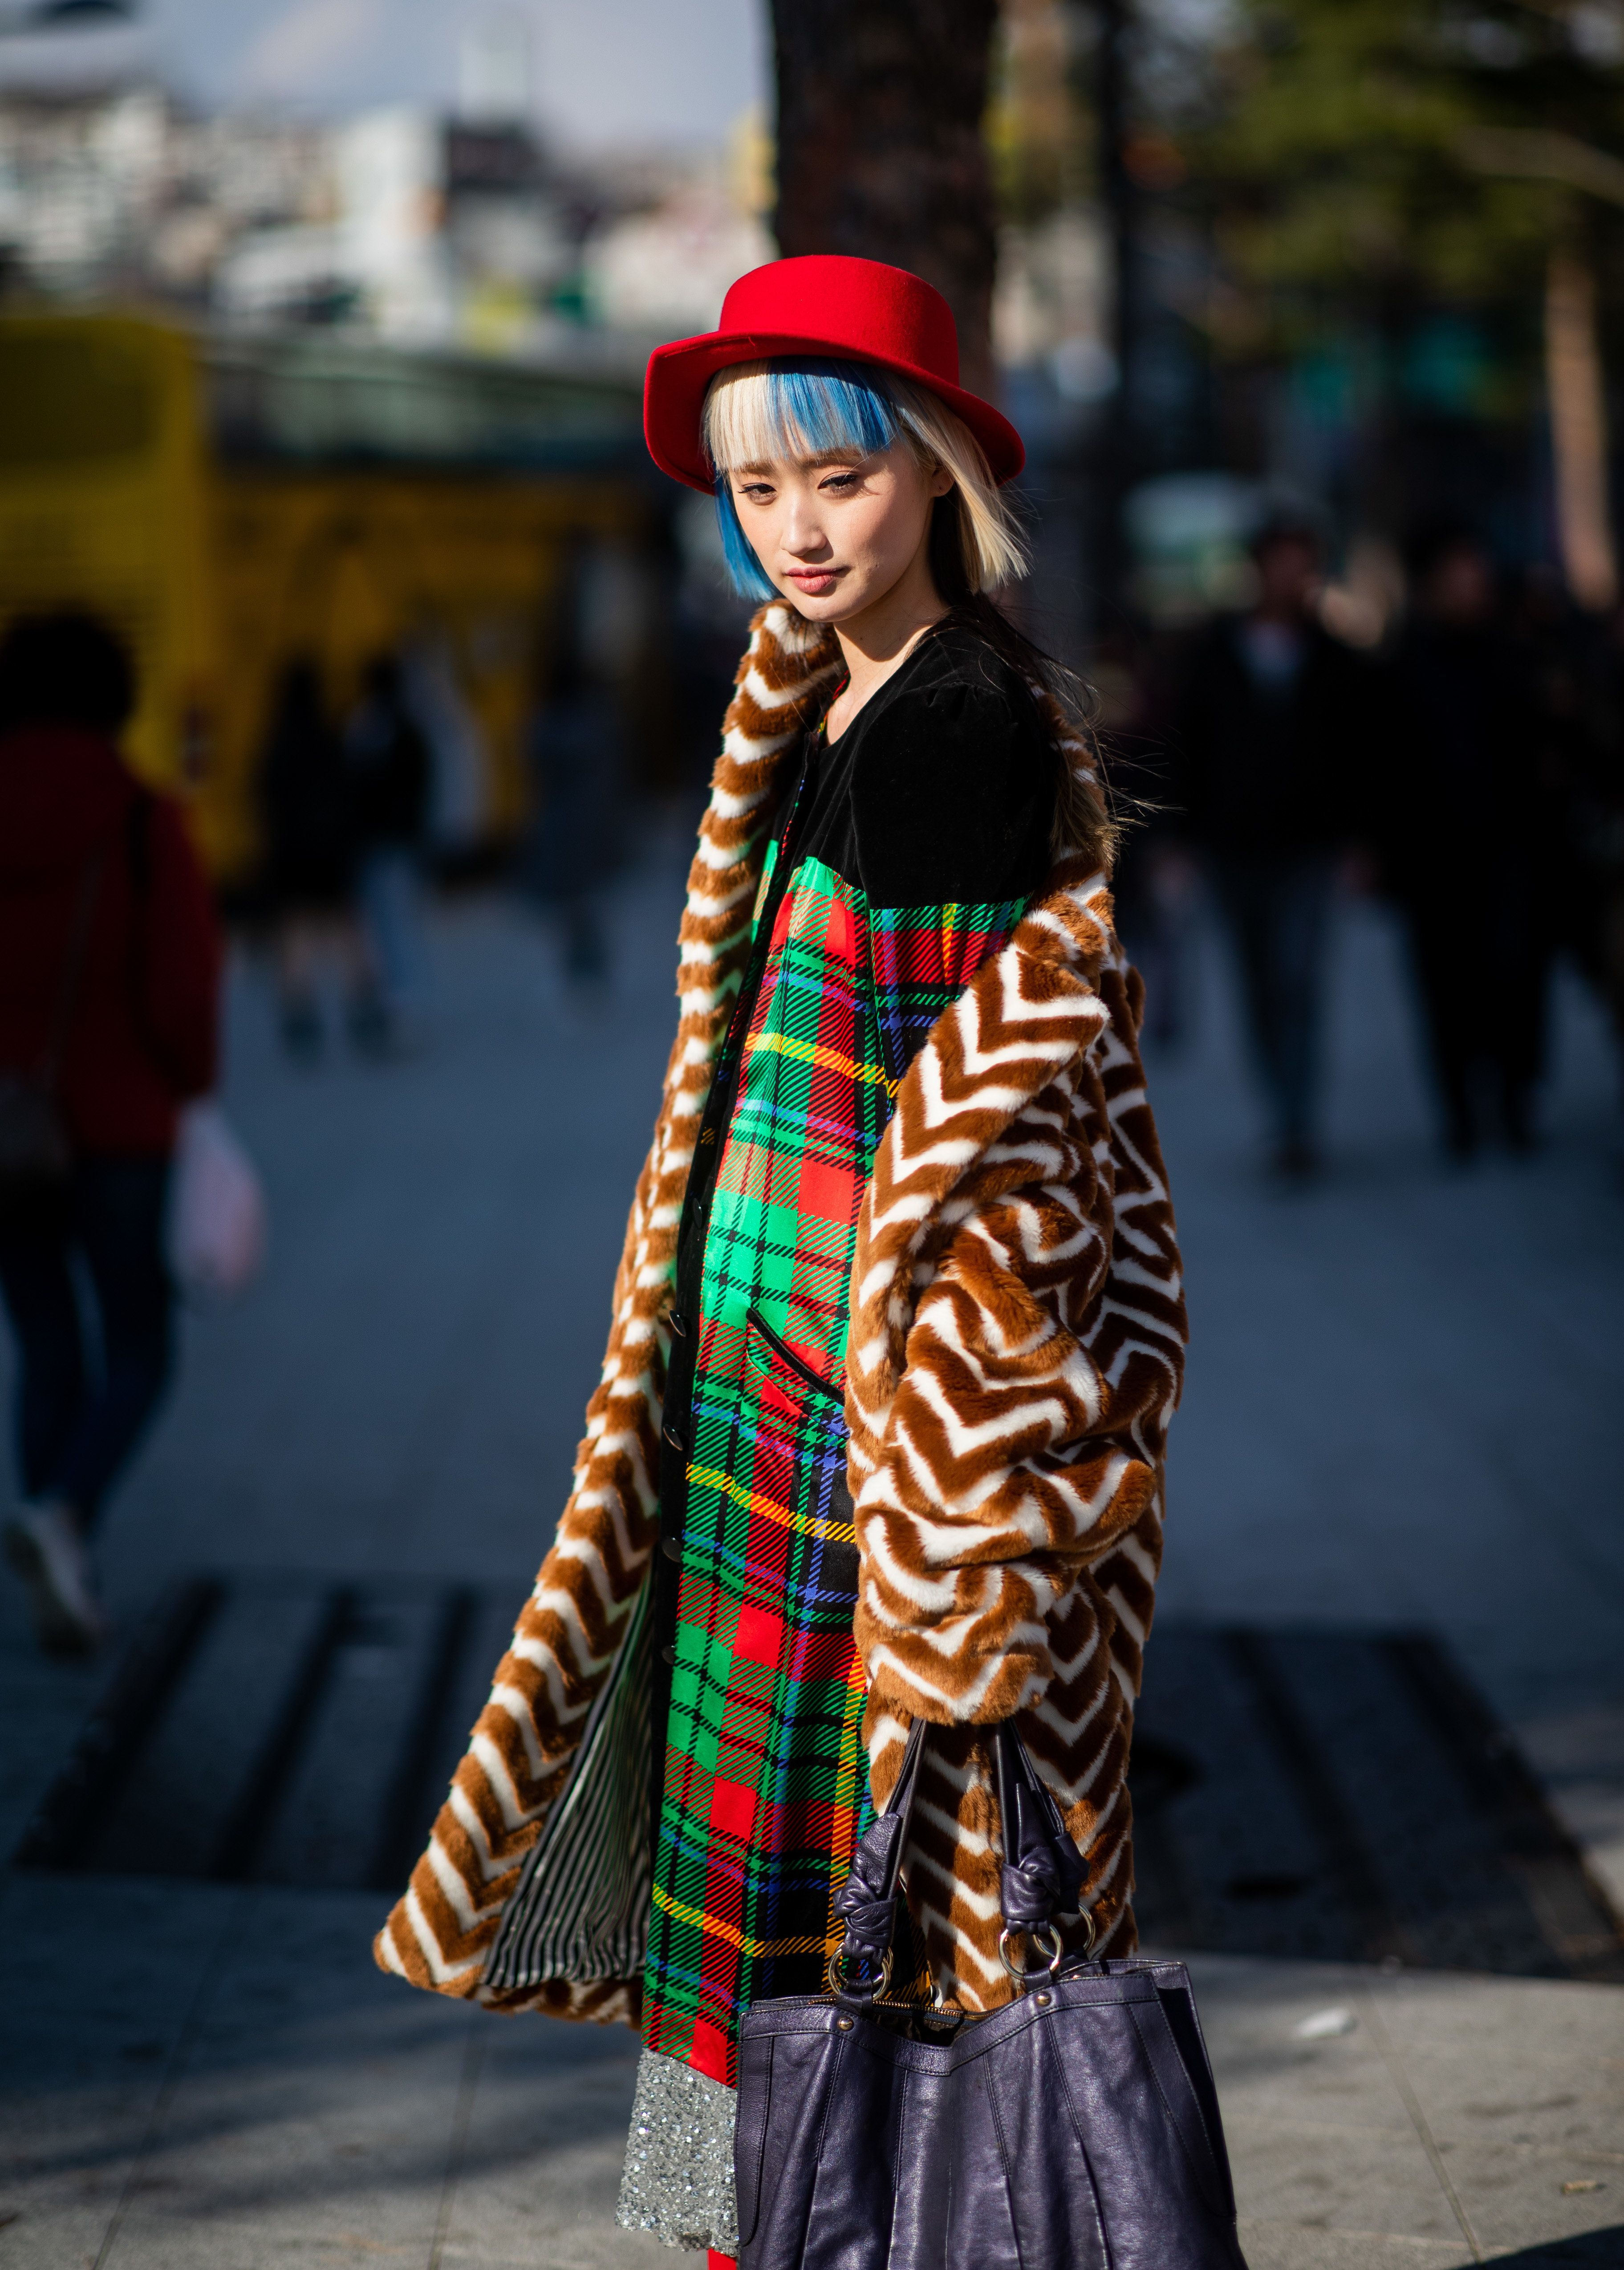 SEOUL, SOUTH KOREA - MARCH 23: A guest is seen wearing red hat, plaid dress at the Hera Seoul Fashion Week 2019 F/W at Dongdaemun Design Plaza at Dongdaemun Design Plaza on March 23, 2019 in Seoul, South Korea. (Photo by Christian Vierig/Getty Images)